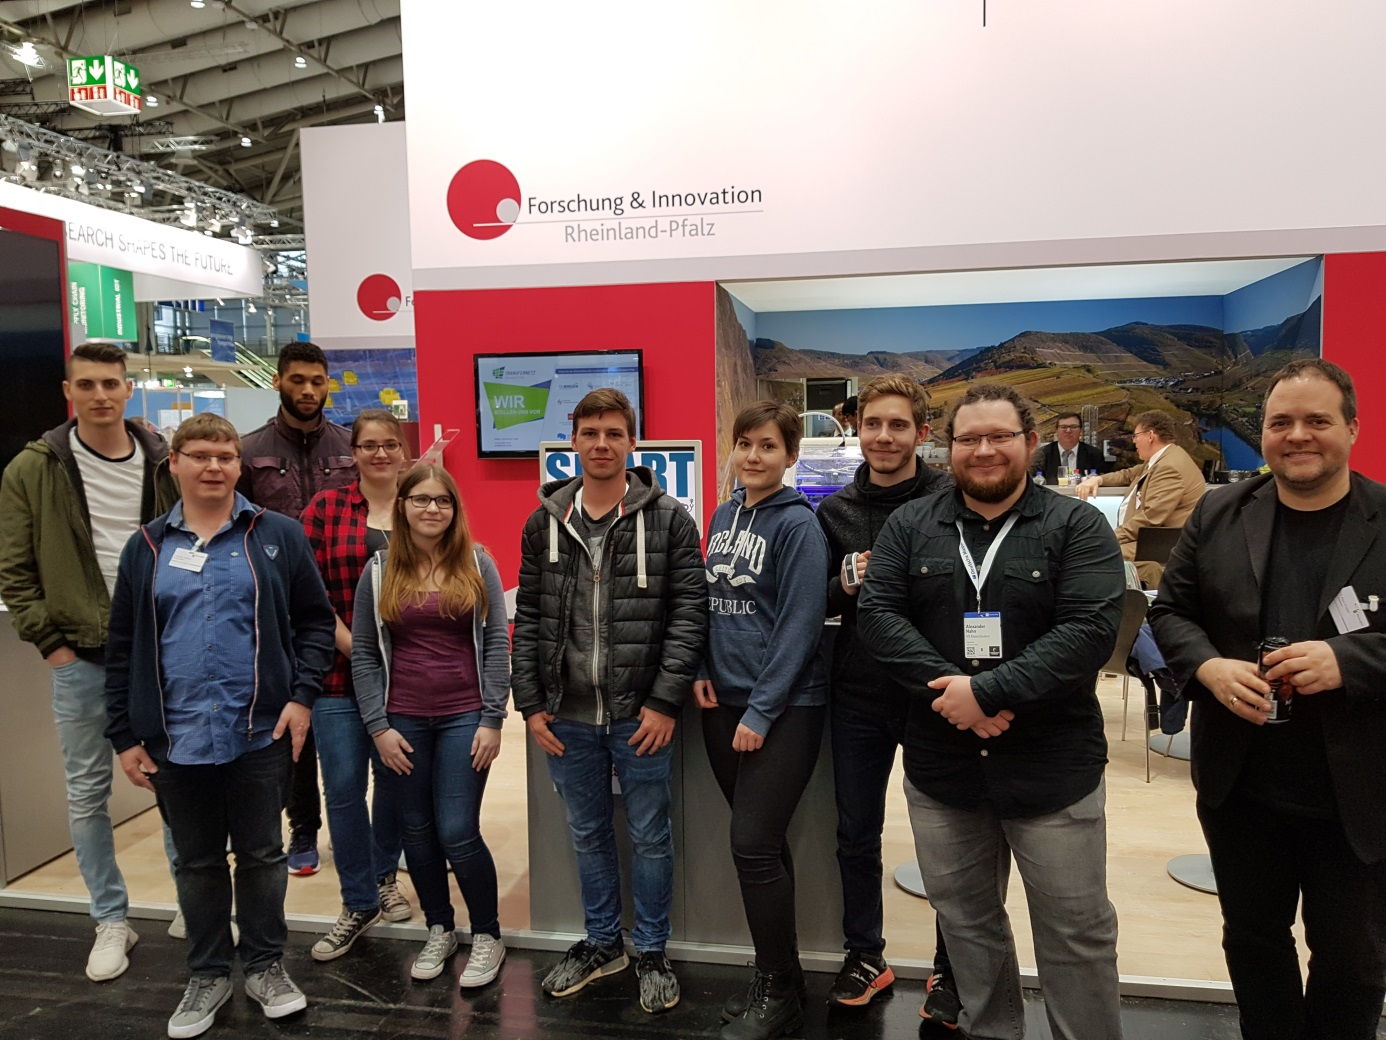 D:\Dropbox\share\fh\Smart Machines\Hannover Messe 2019\Bilder\20190404_160928.jpg